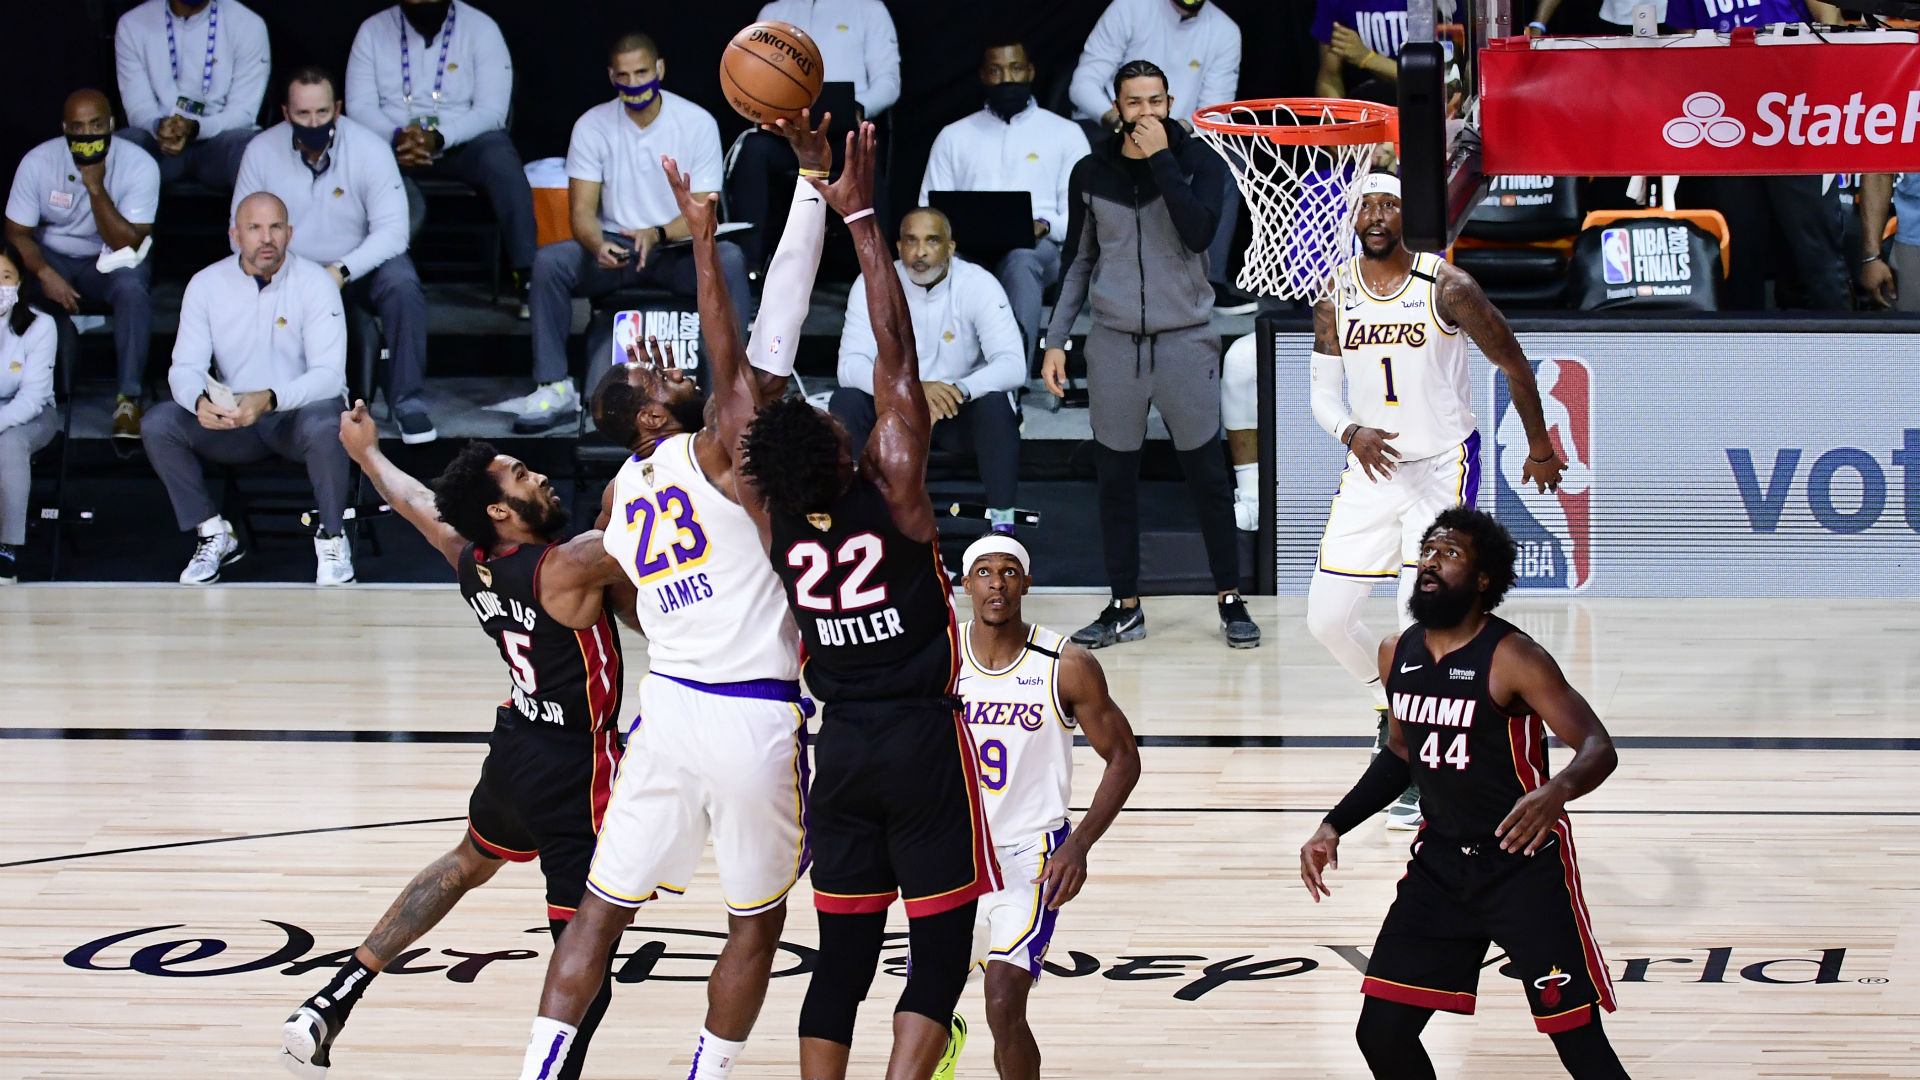 Lakers vs. Heat live score, updates, highlights from Game 5 of the 2020 NBA Finals